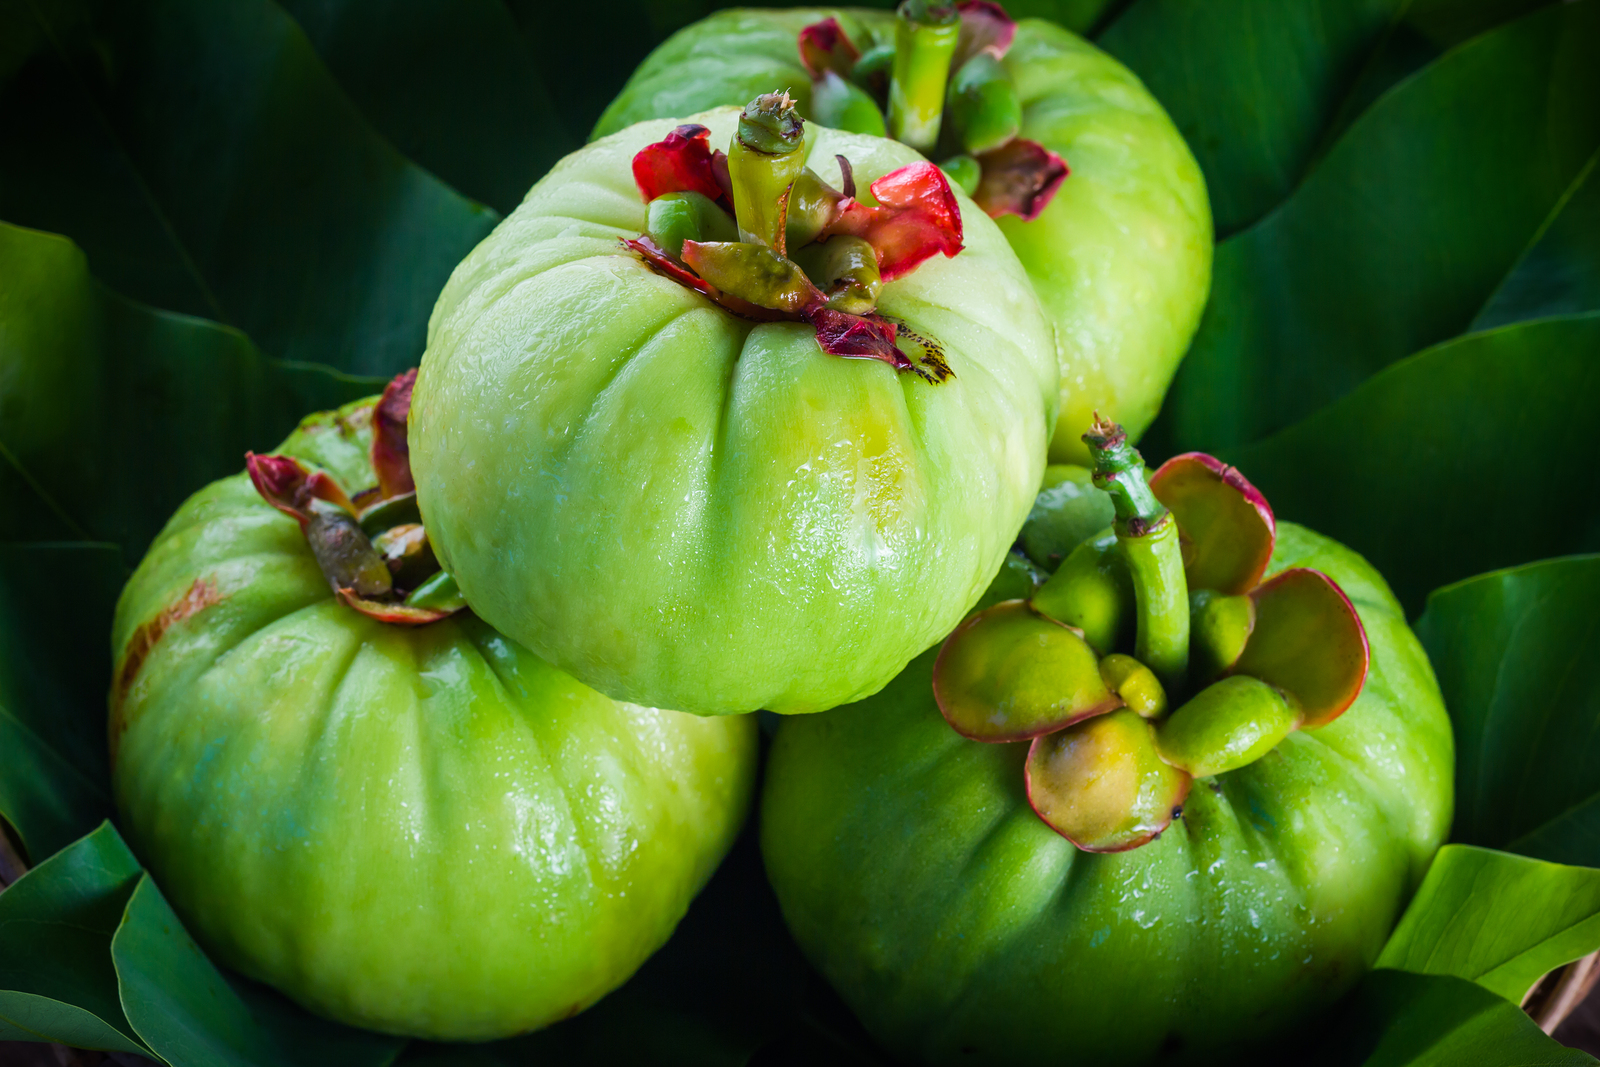 Still life with fresh garcinia cambogia on leaf background. Garcinia is thai herb (south of Thailand) and sour flavor lots of vitamin C. Low key picture style.Closeup